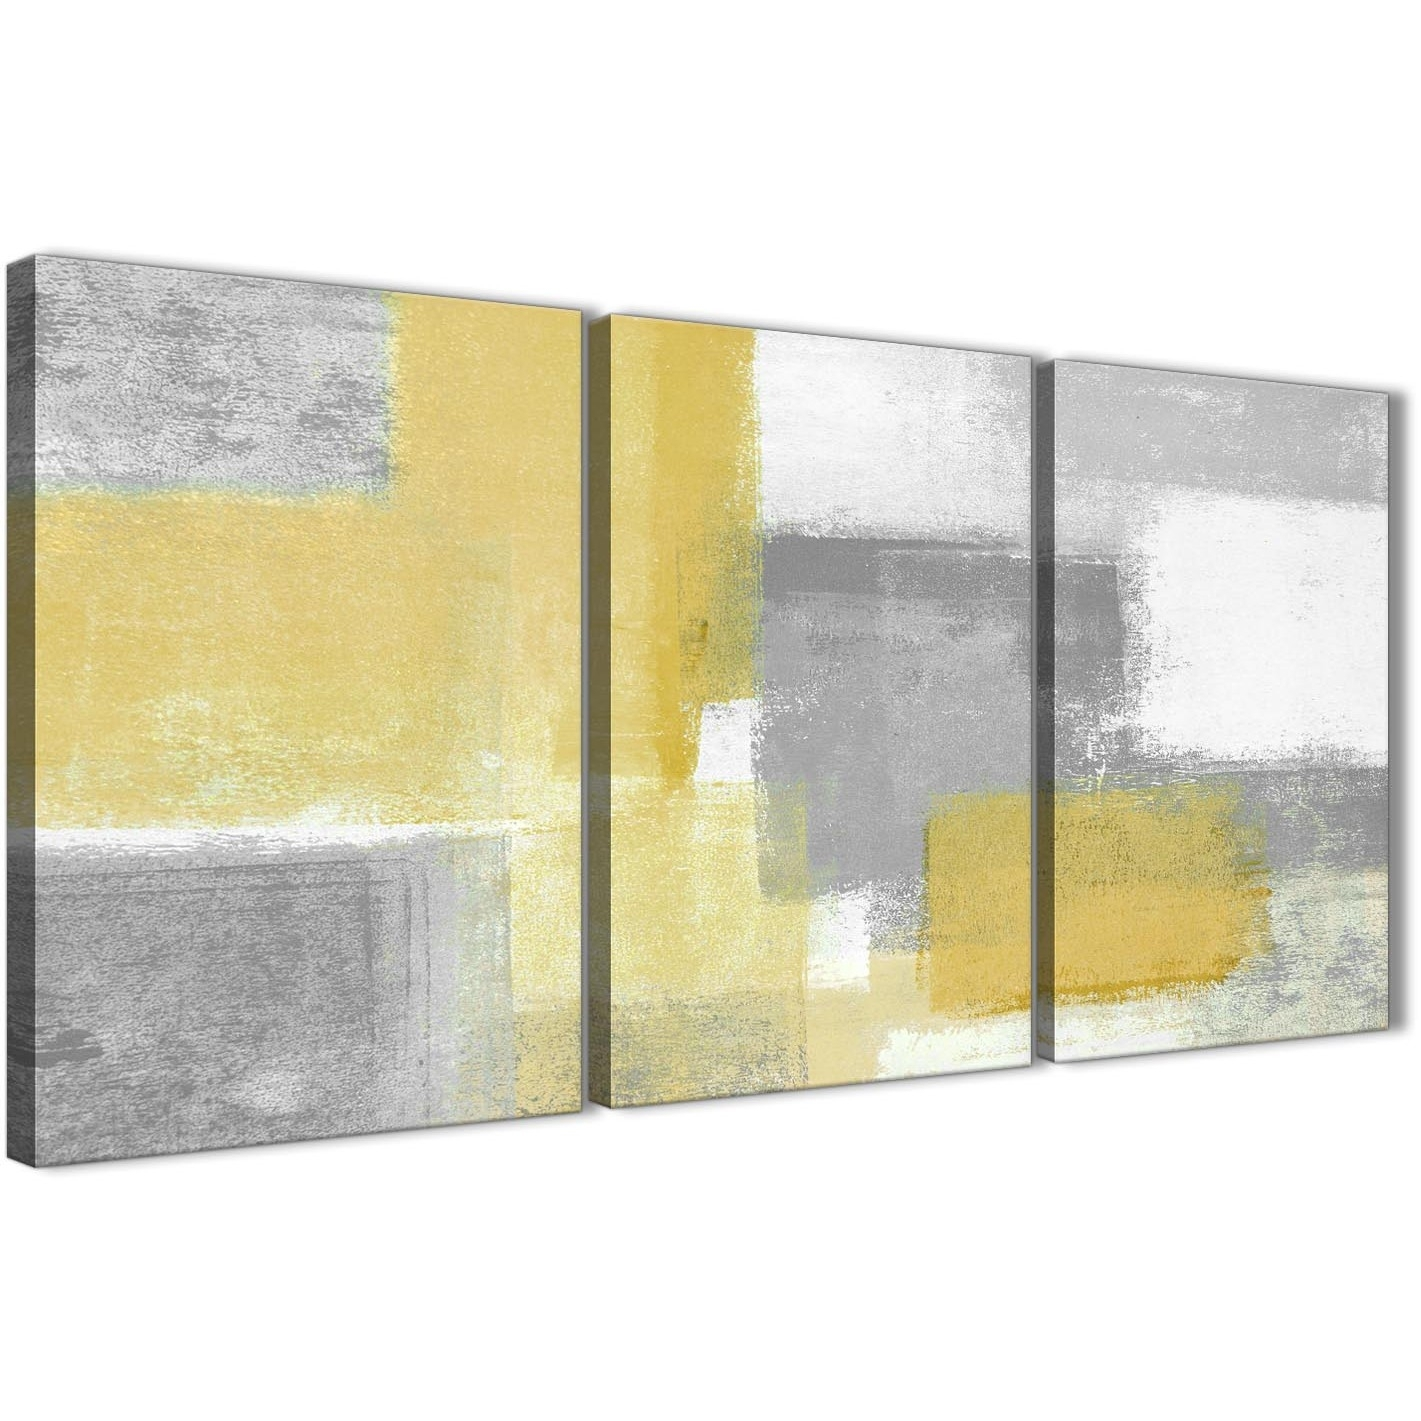 3 Panel Mustard Yellow Grey Kitchen Canvas Wall Art Decor – Abstract Throughout Latest Canvas Wall Art (View 5 of 15)